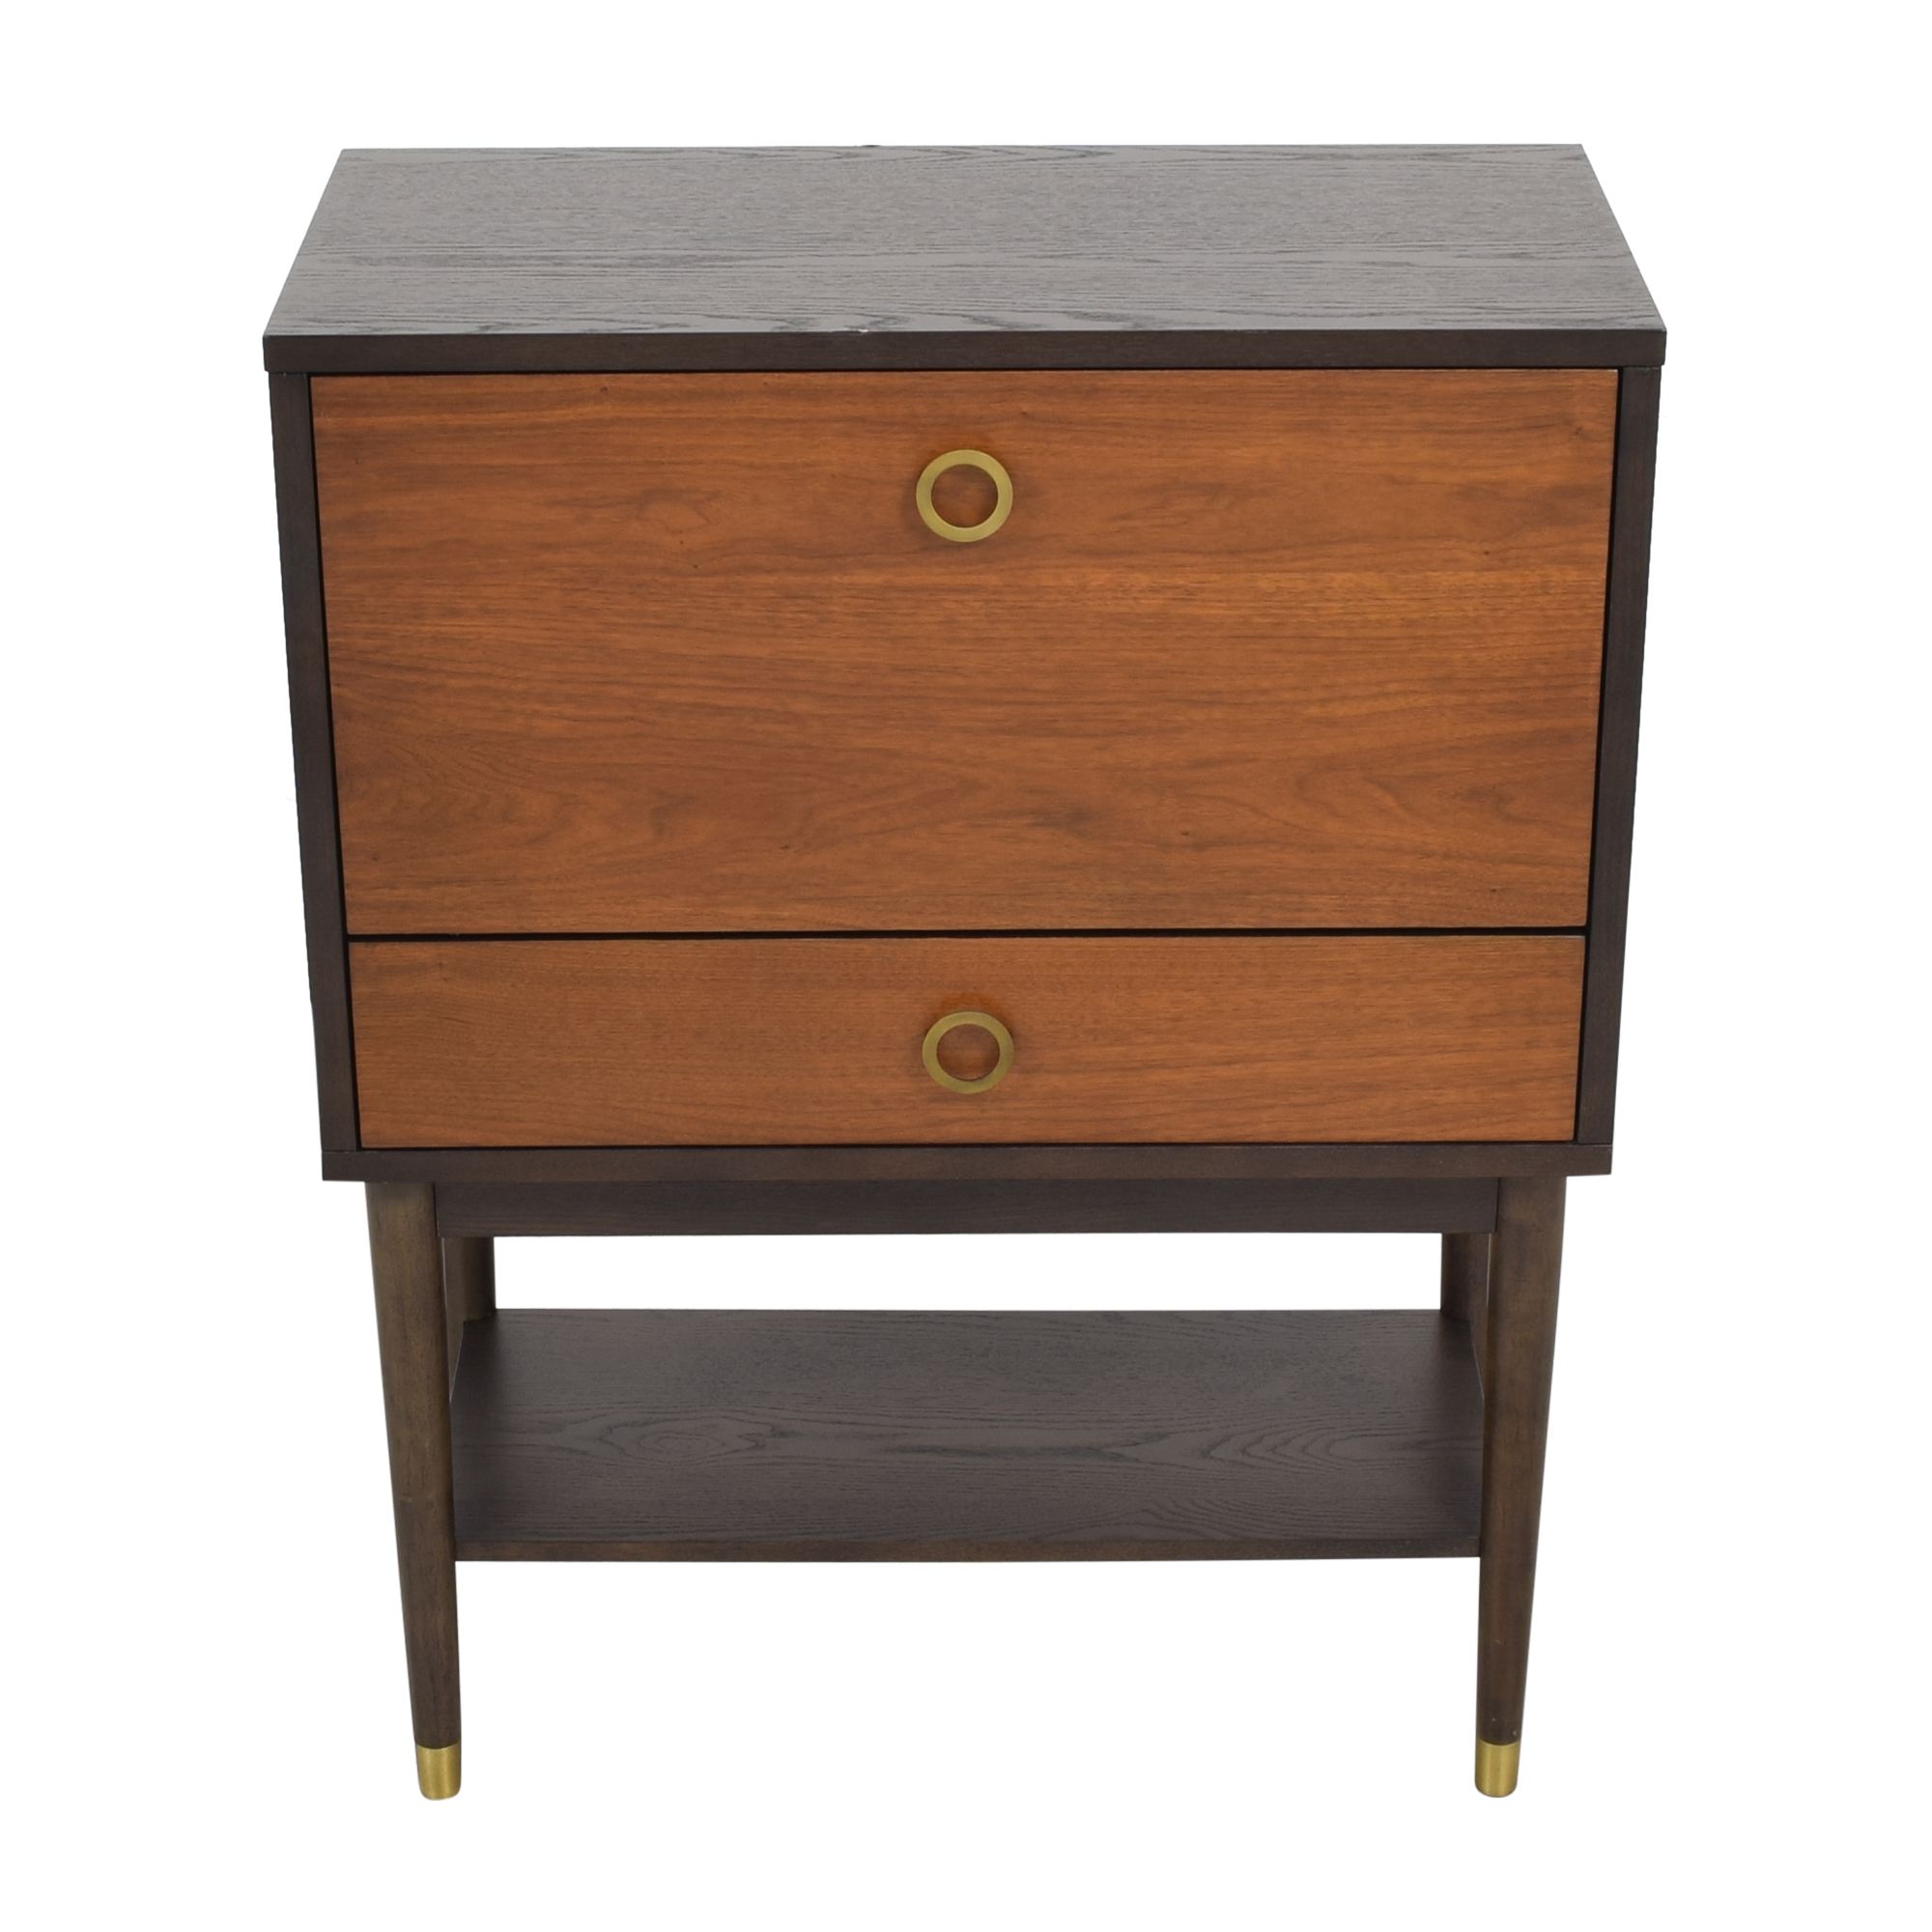 West Elm Dobson Flip Down Bar Cabinet / Storage